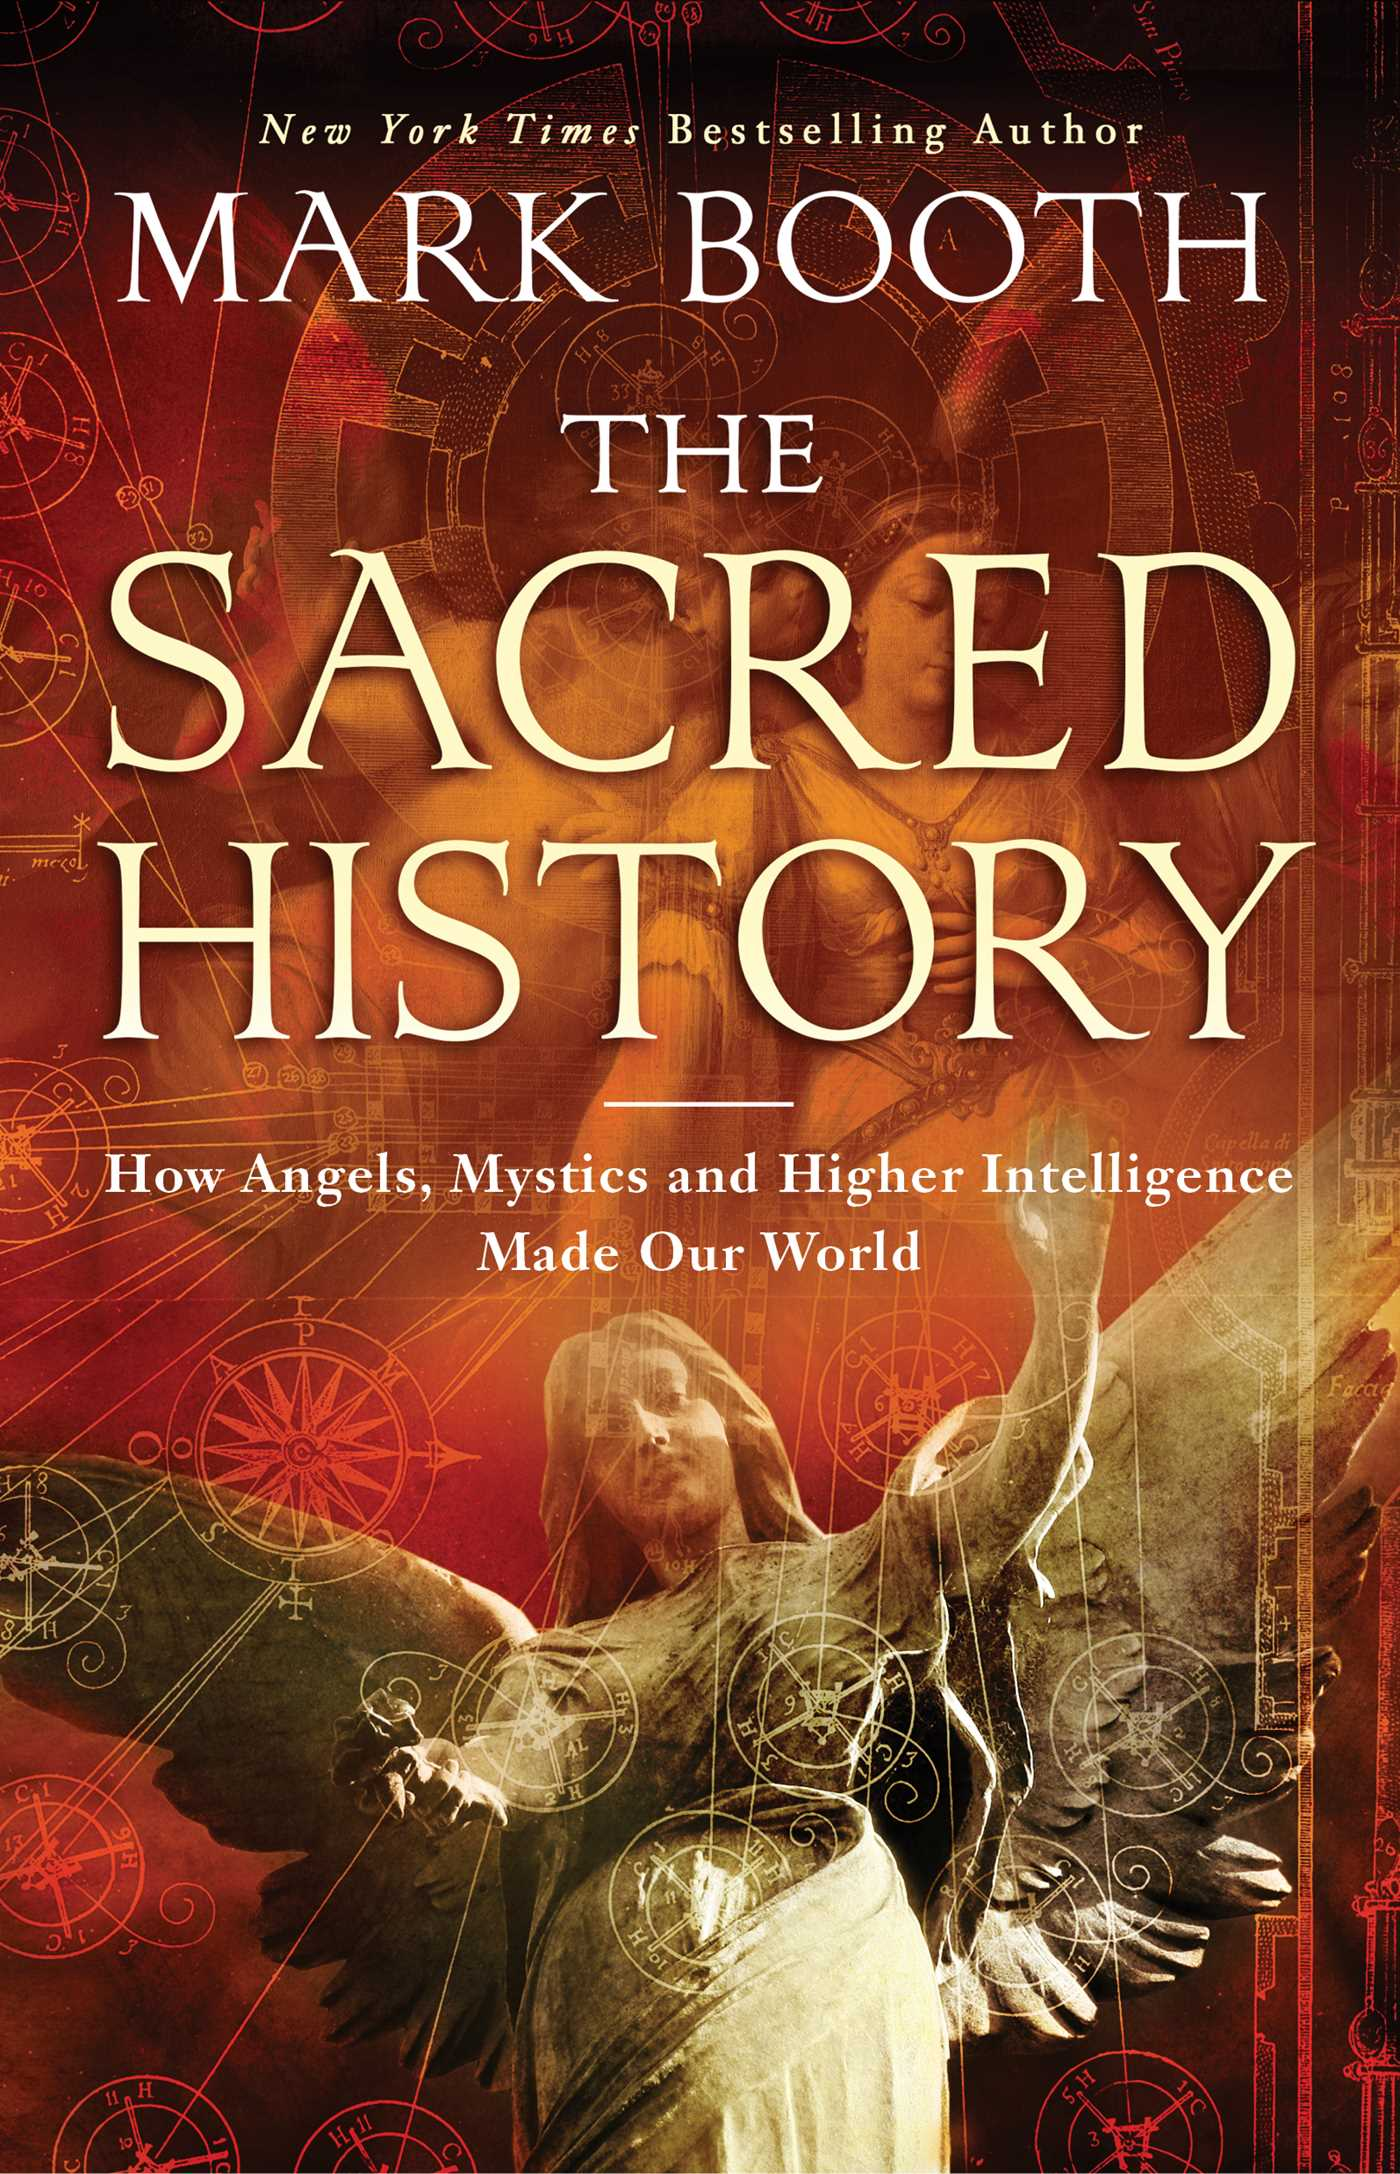 The sacred history 9781451698589 hr